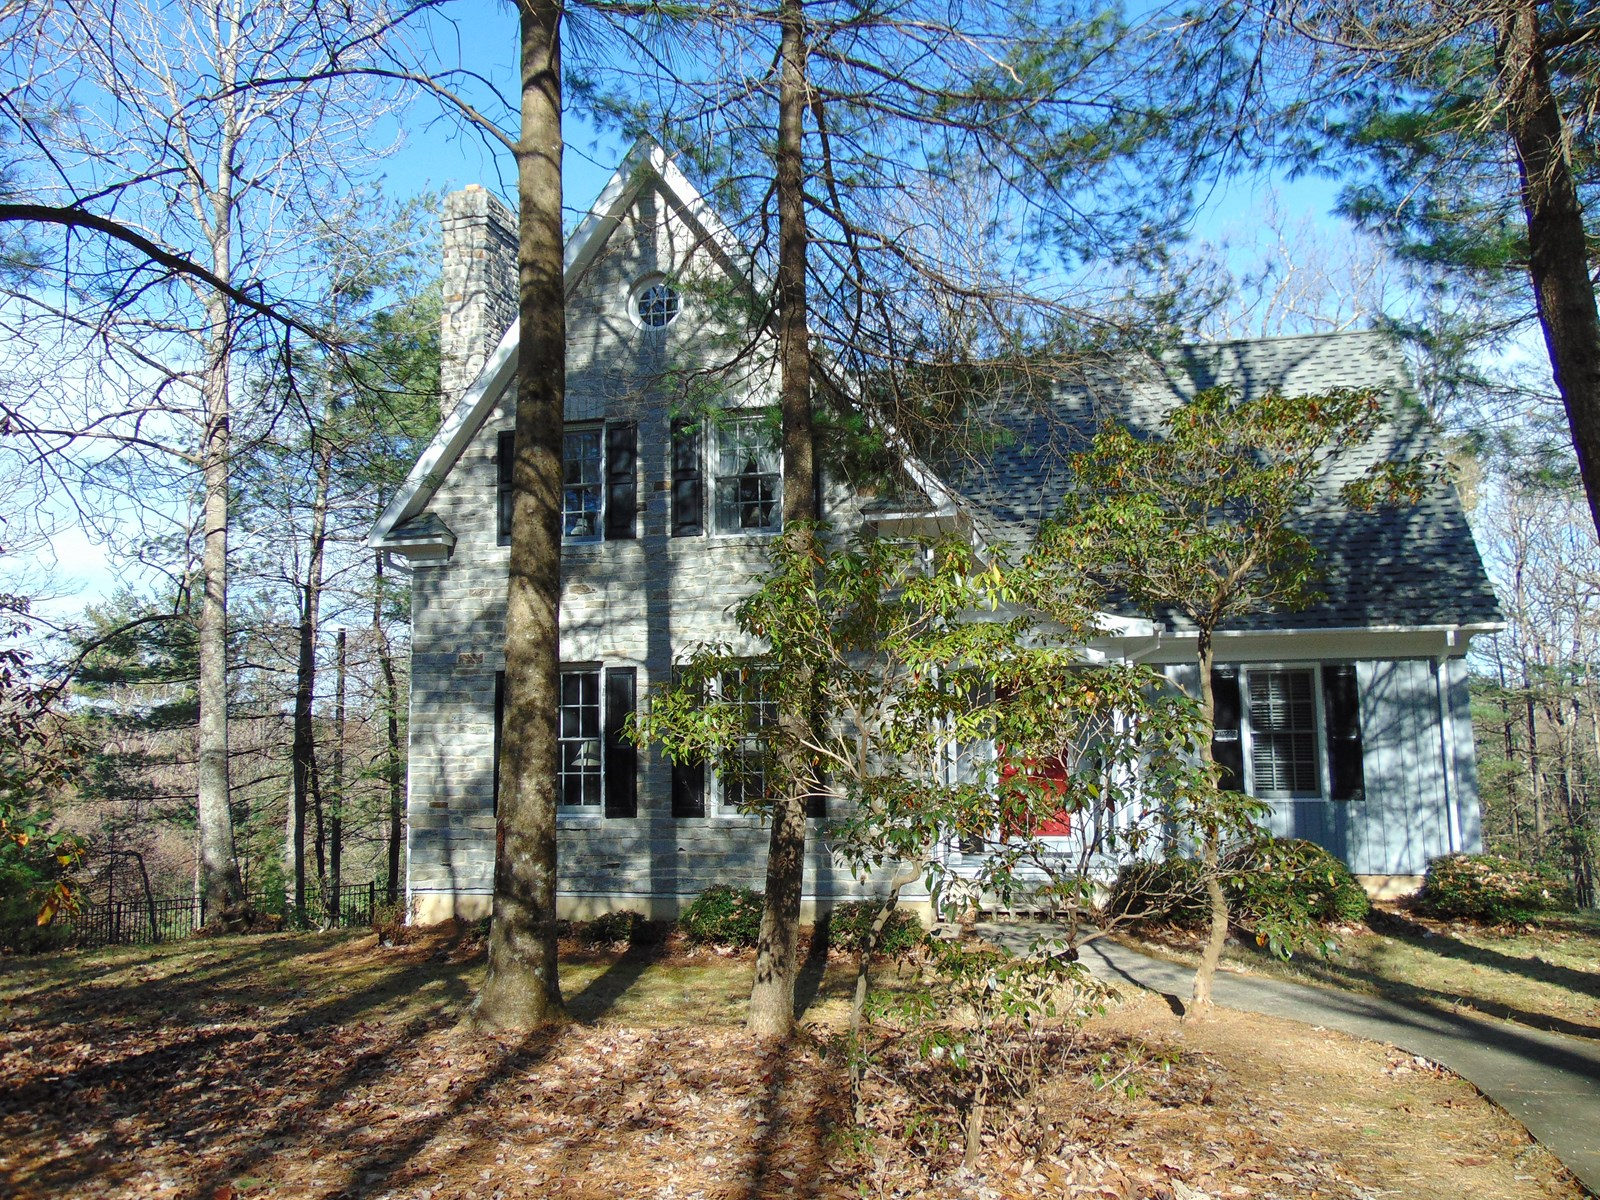 Striking Home in High Meadows at Roaring Gap, NC